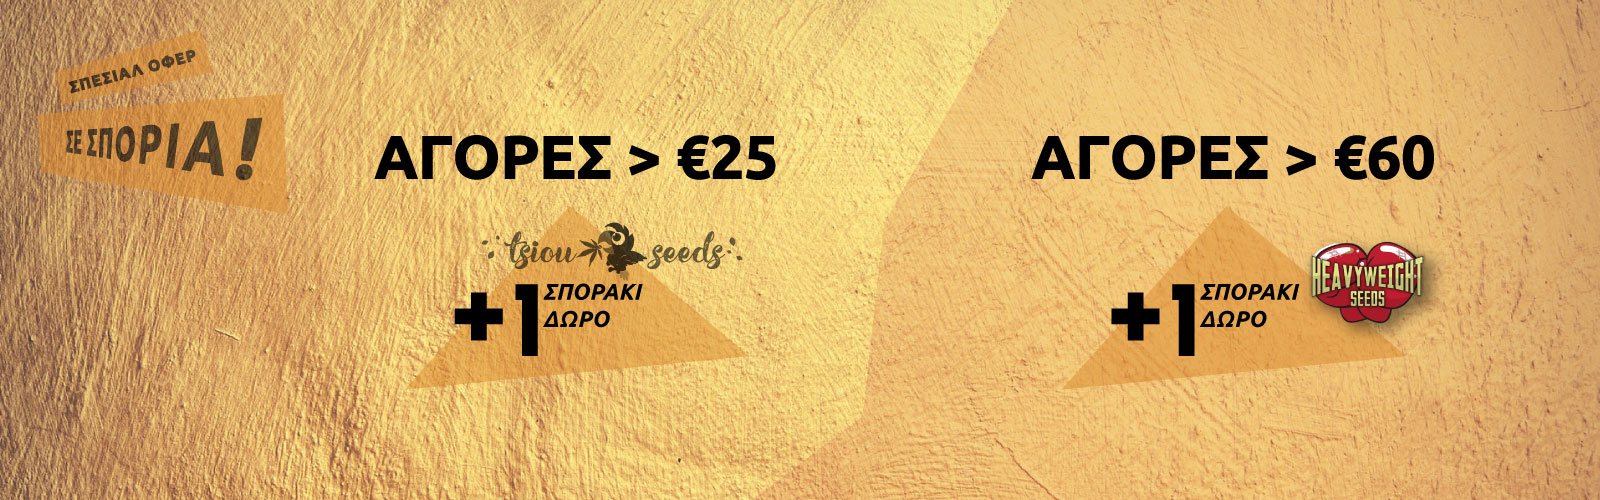 TsiouSeeds-Offer-Seeds-Oct2019